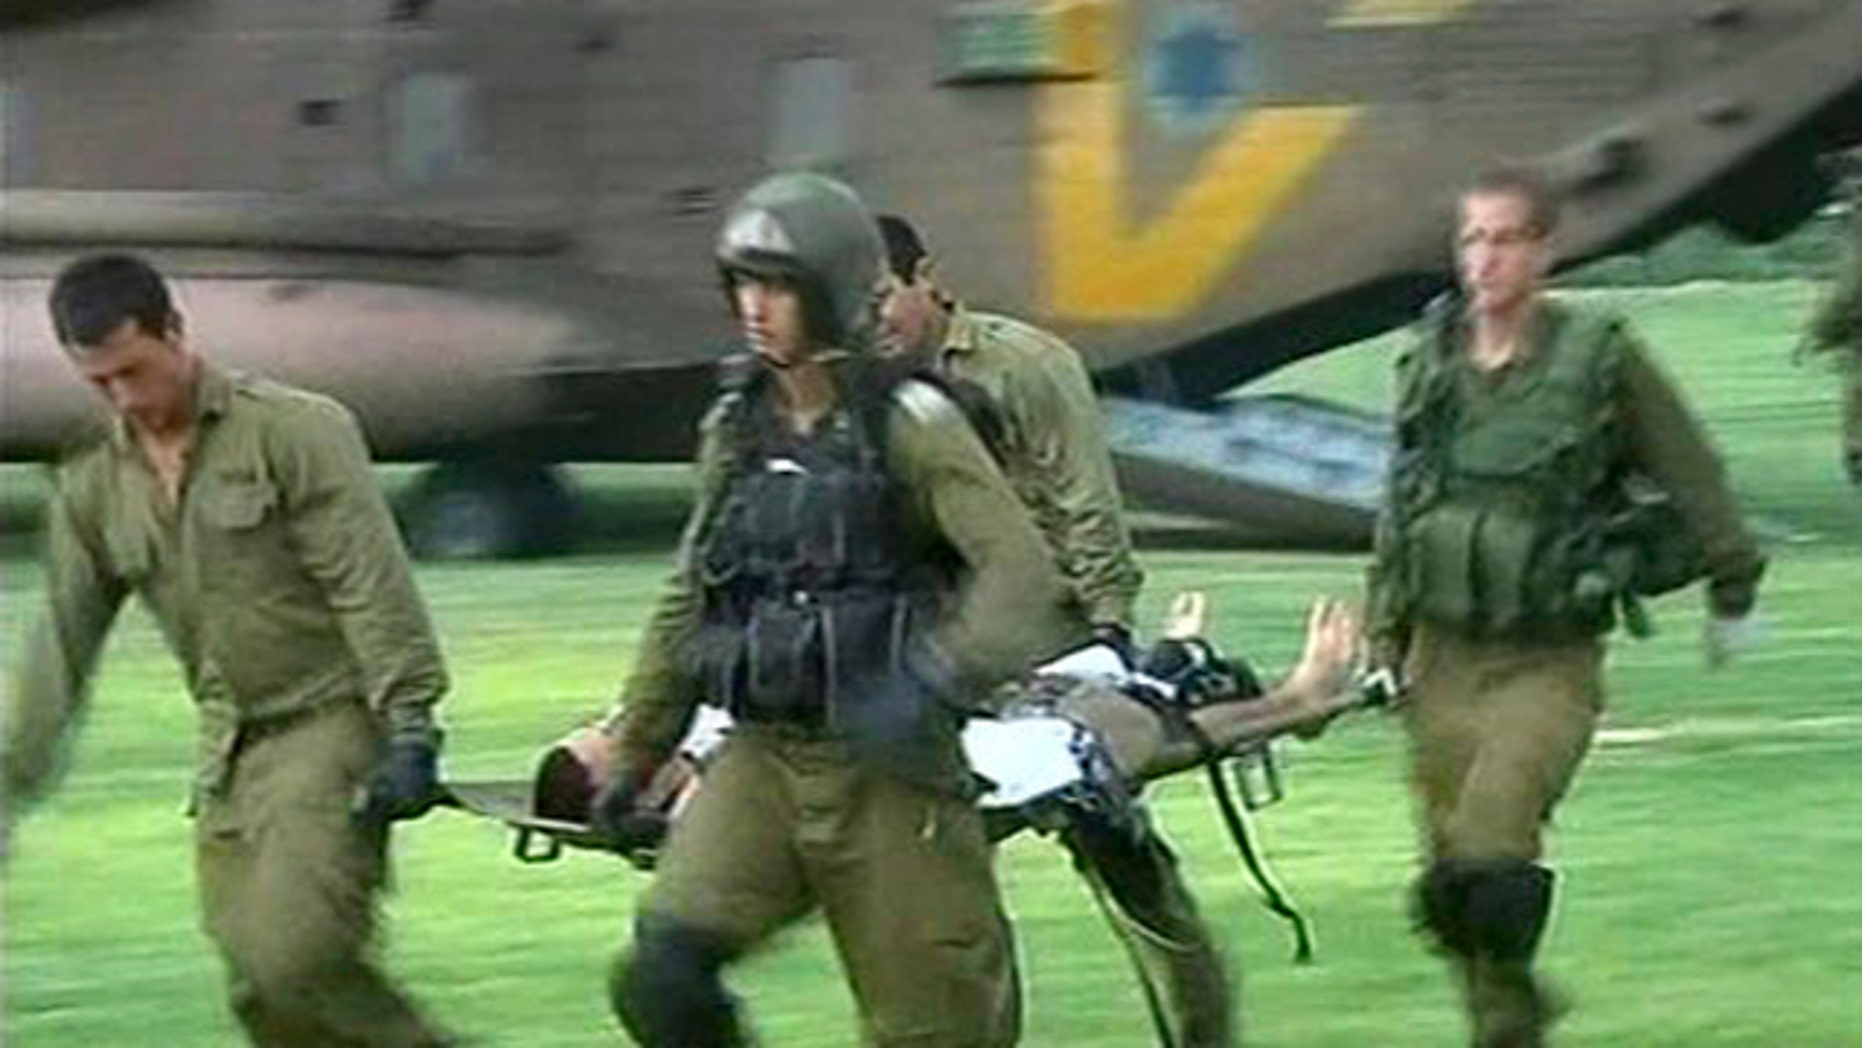 In this image provided by Associated Press Television News, an injured man is carried on a stretcher by helicopter crew on arrival at Soroka hospital in Beersheba, Israel, Aug. 18.